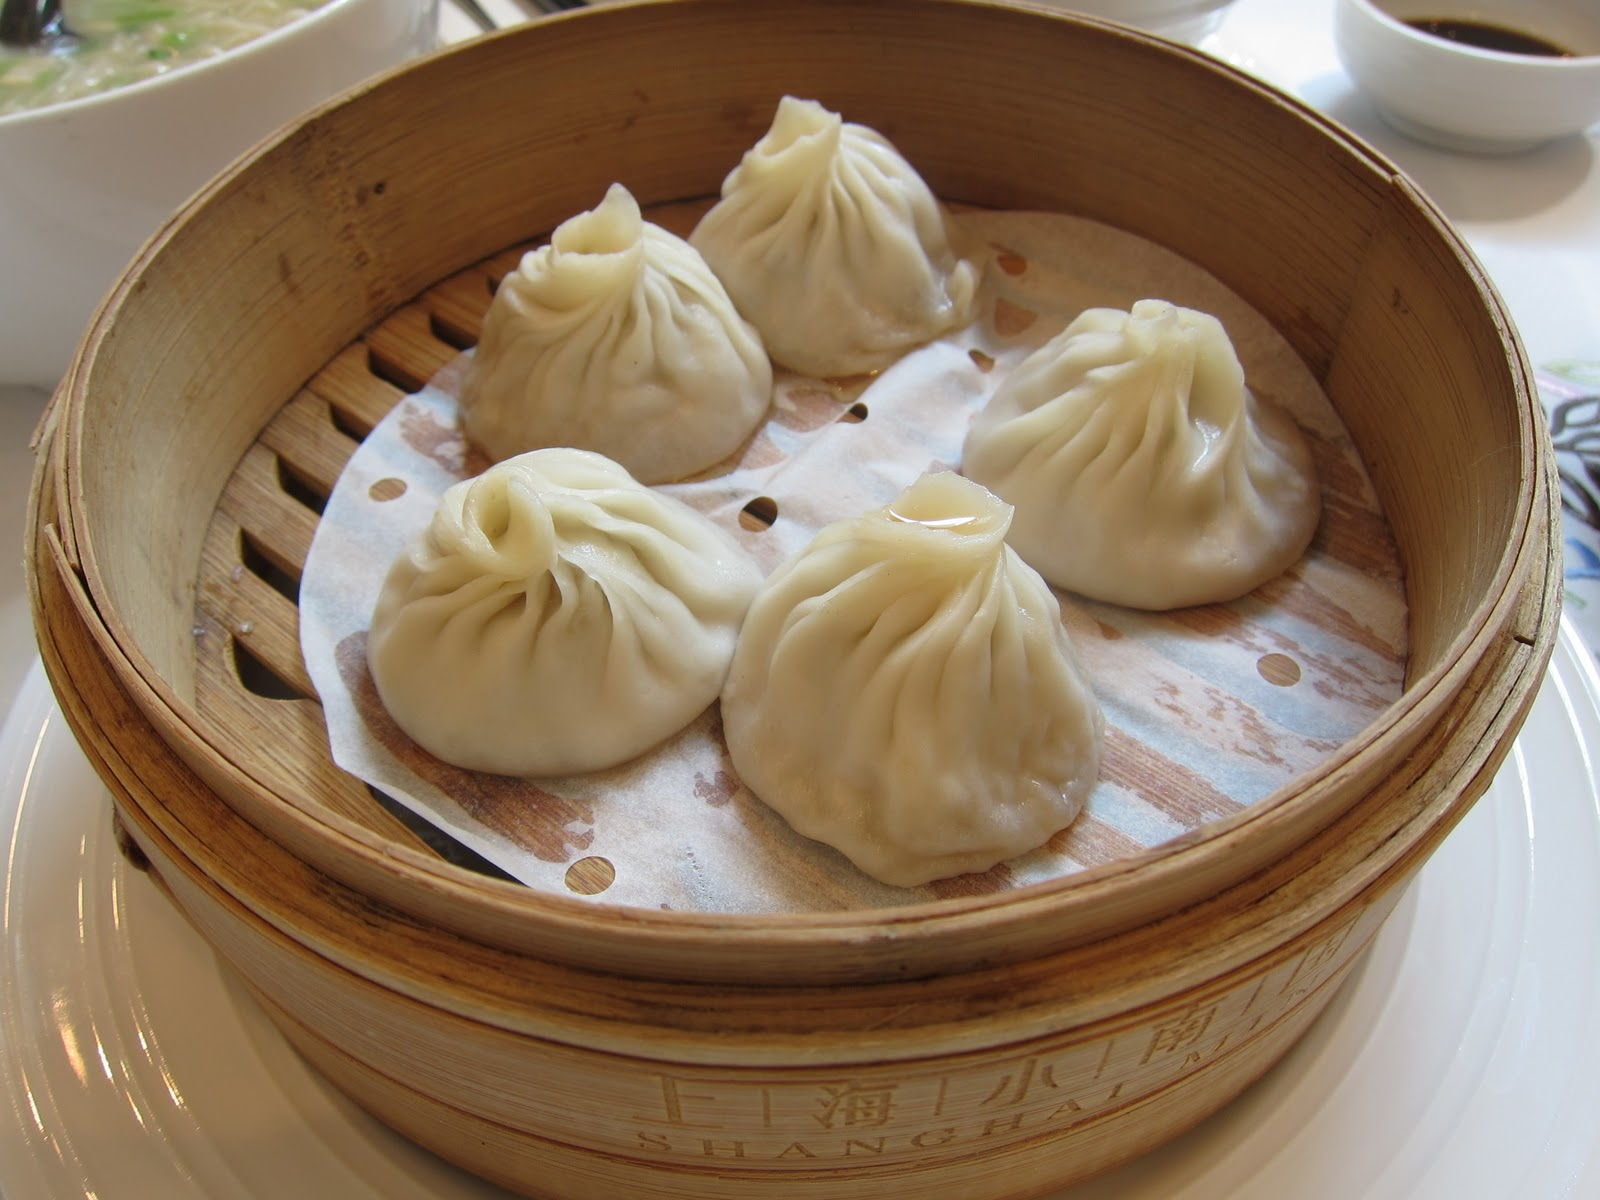 ... steamed pork soup dumplings xiao long bao aka shanghai dumplings